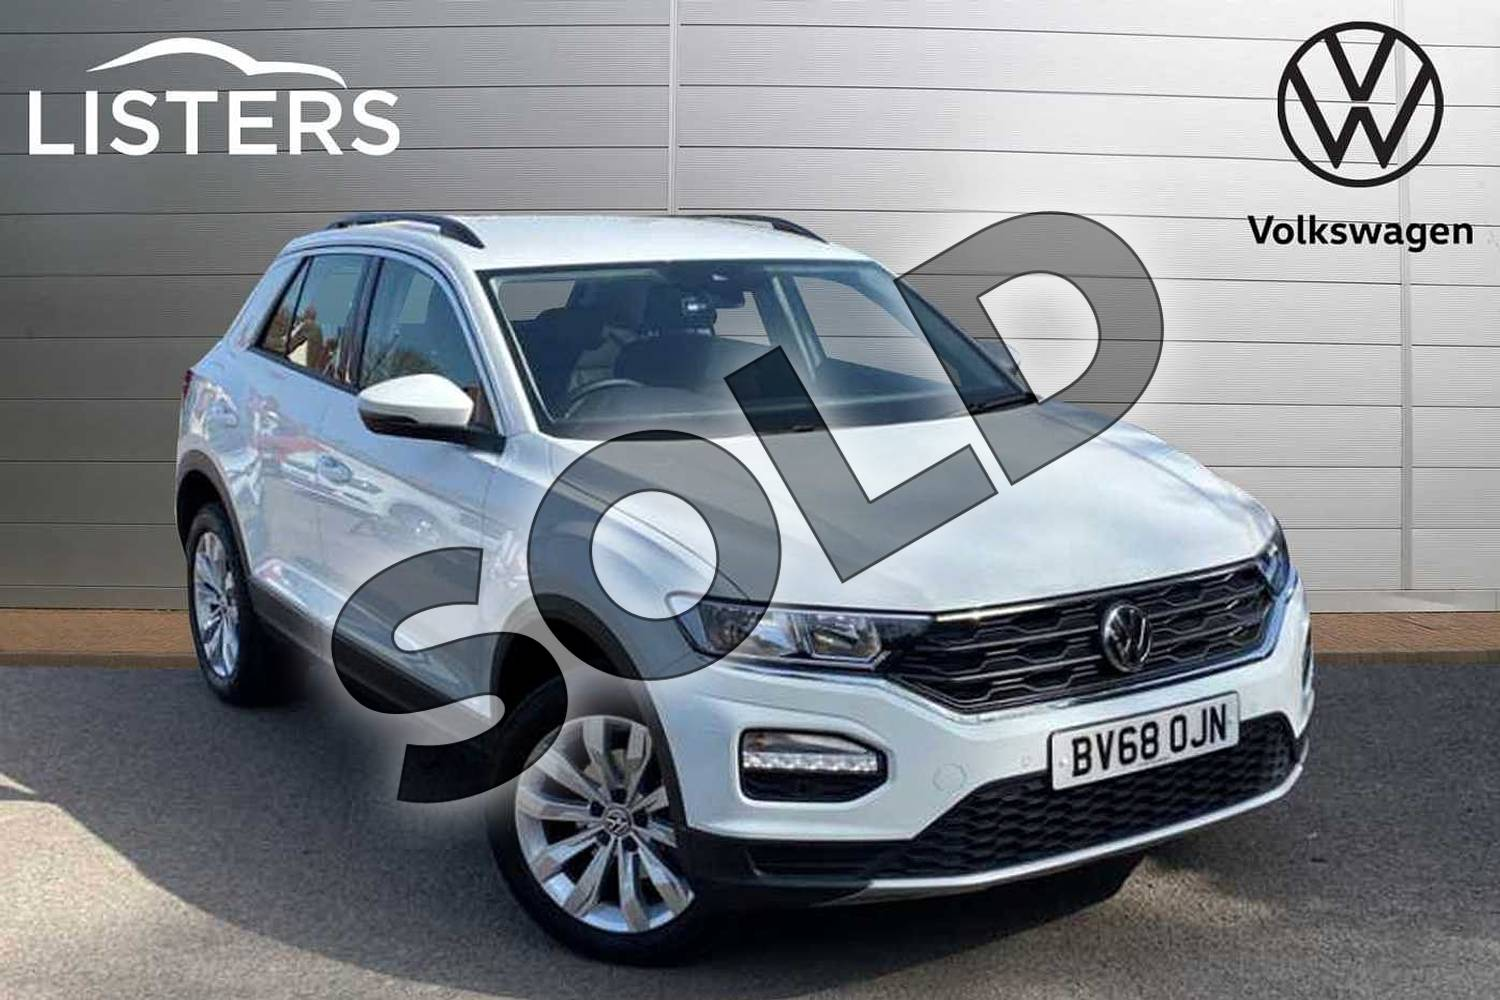 2019 Volkswagen T-Roc Diesel Hatchback 1.6 TDI SE 5dr in Pure White at Listers Volkswagen Coventry